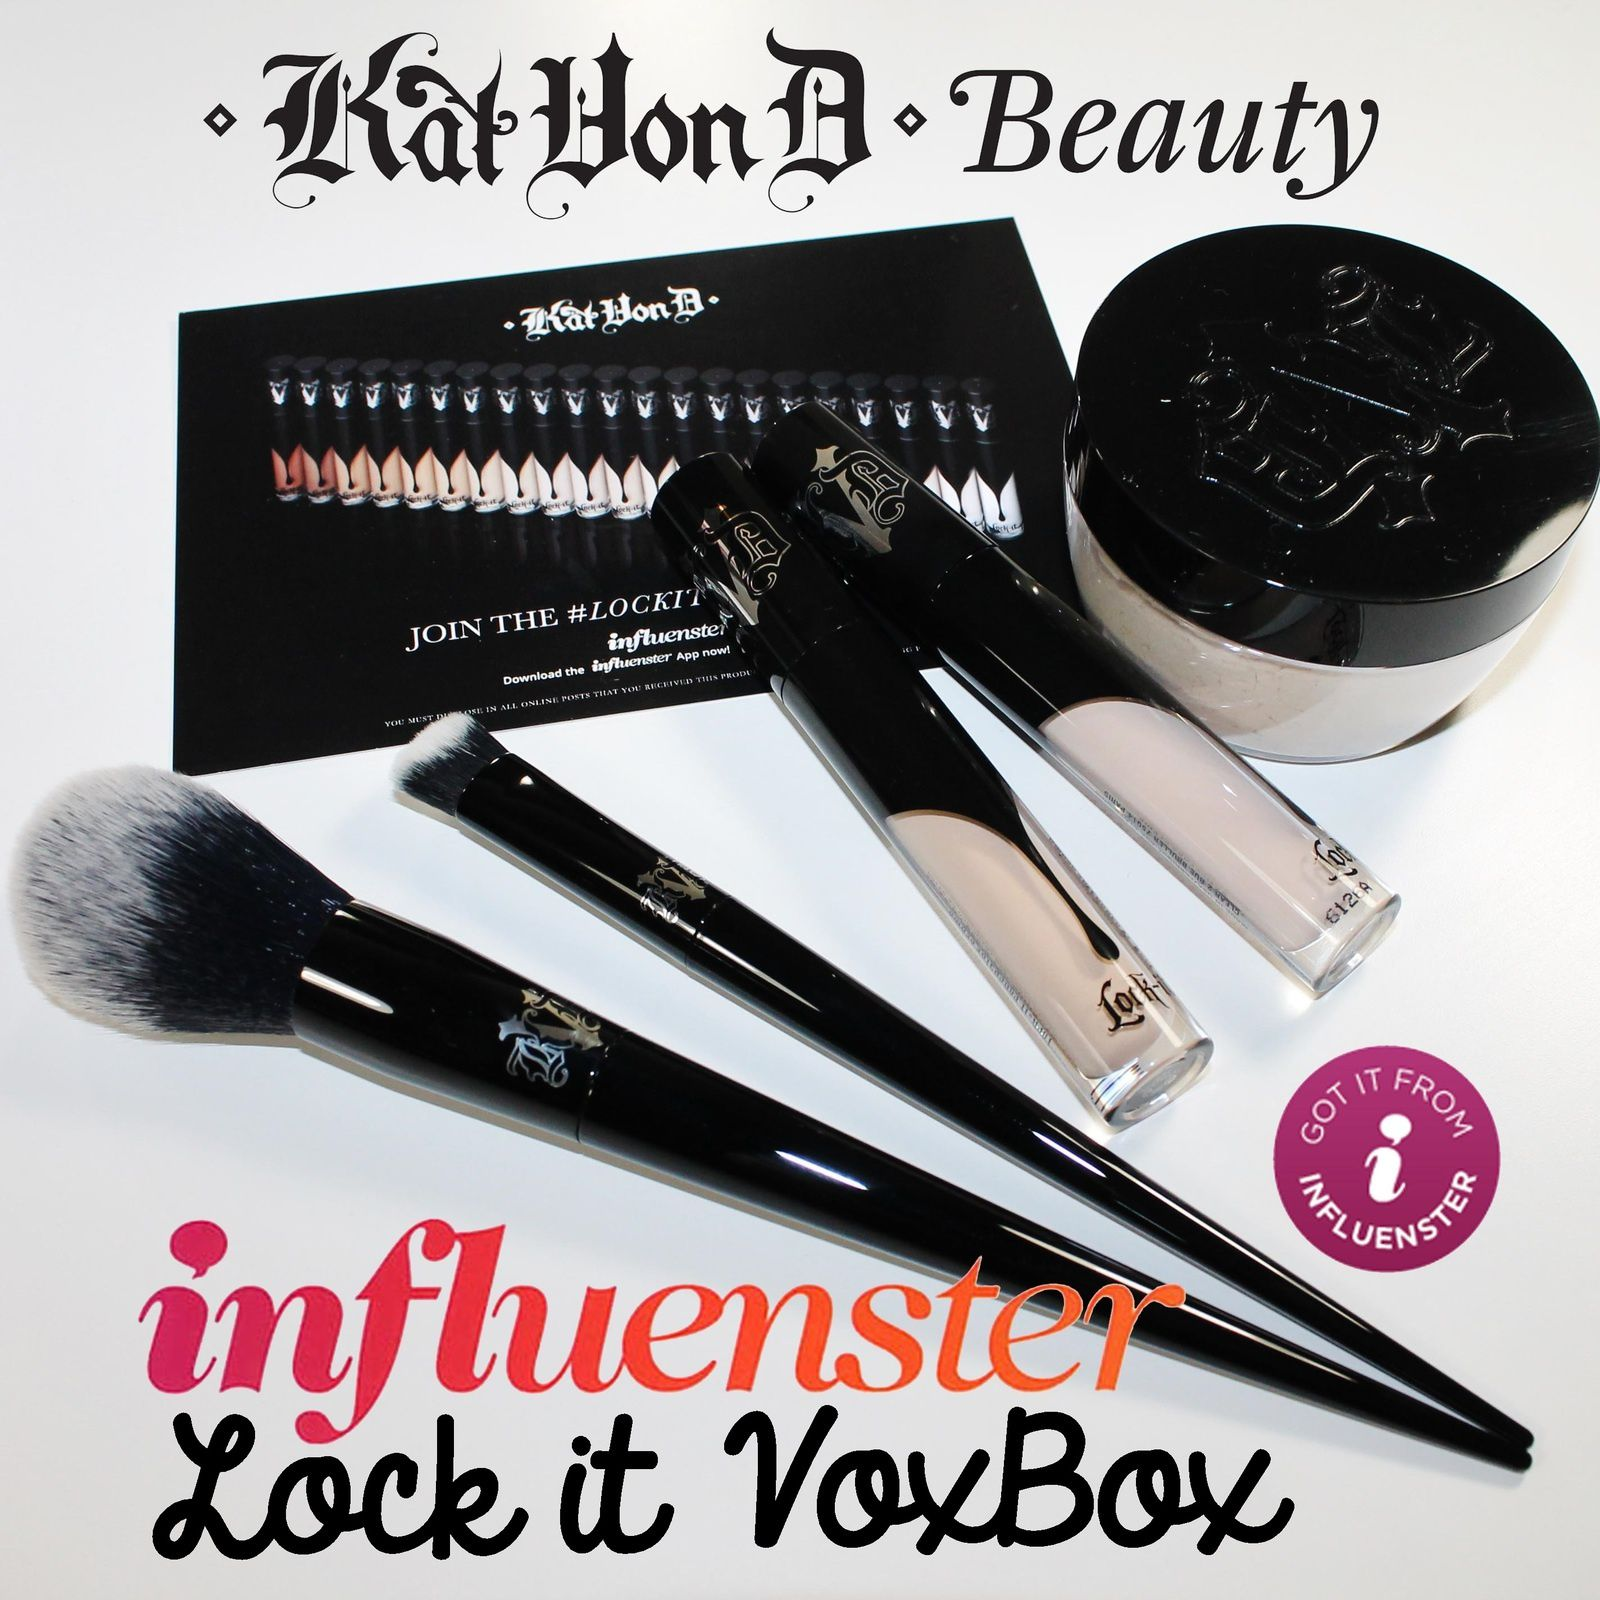 I received this product complimentary from Influenster & Kat Von D Beauty for testing purposes.